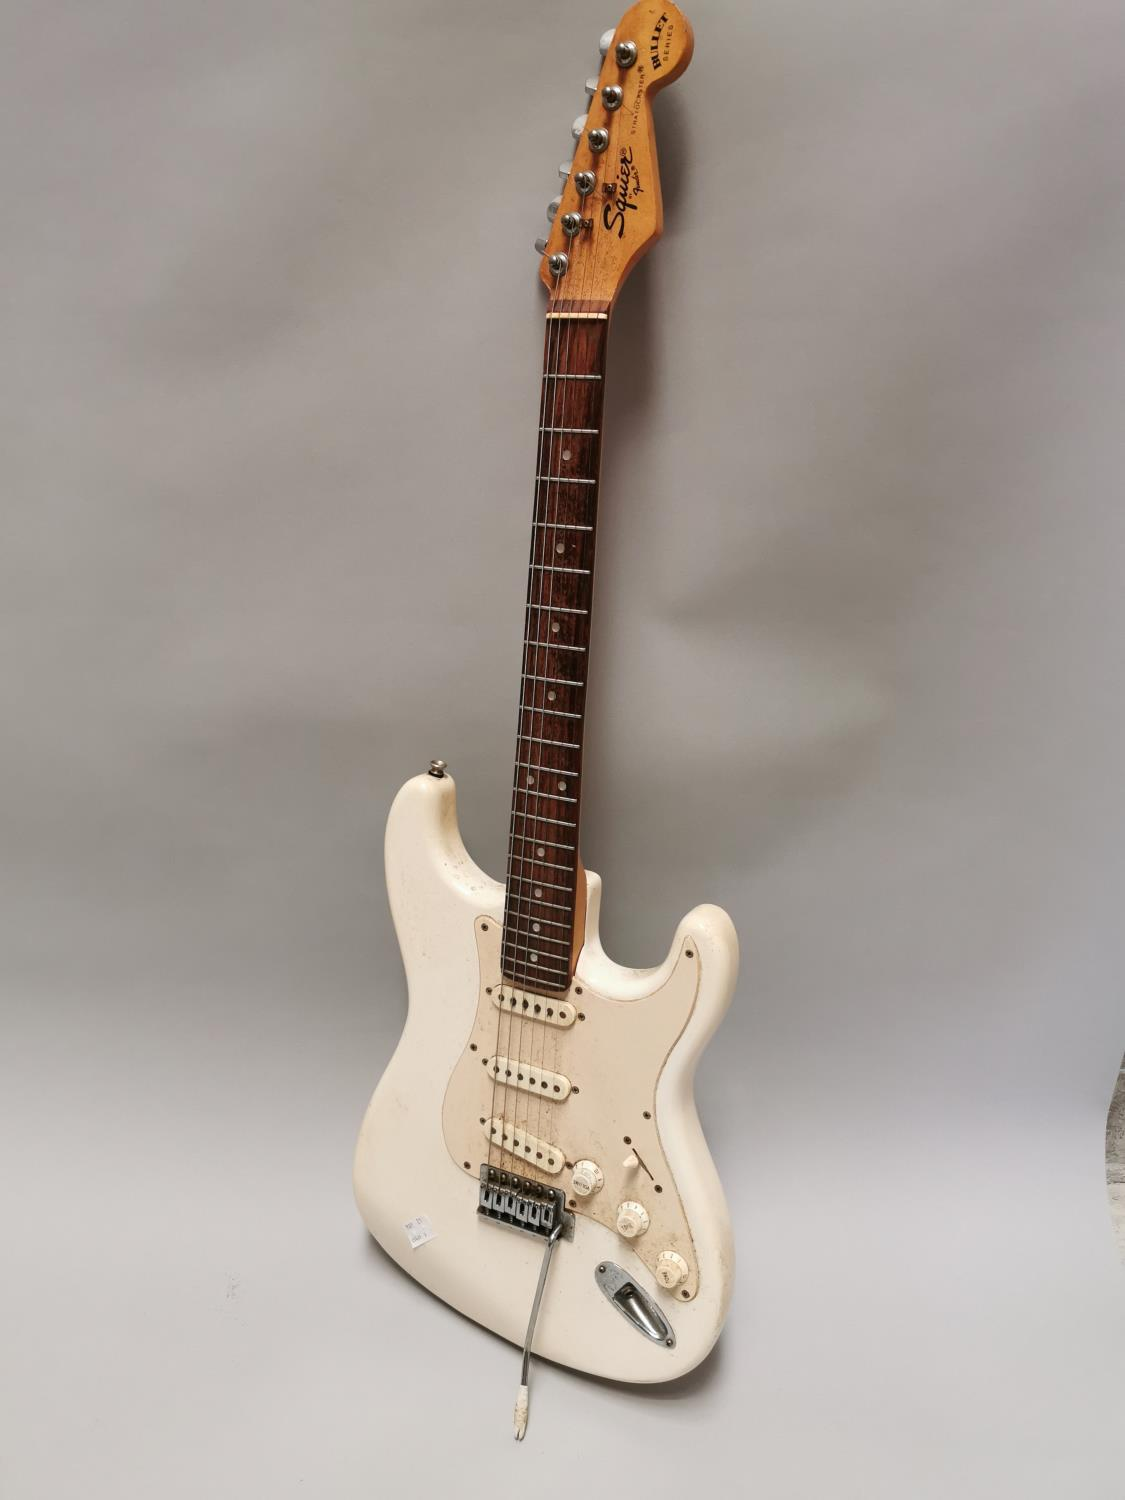 Squire Fender electric guitar